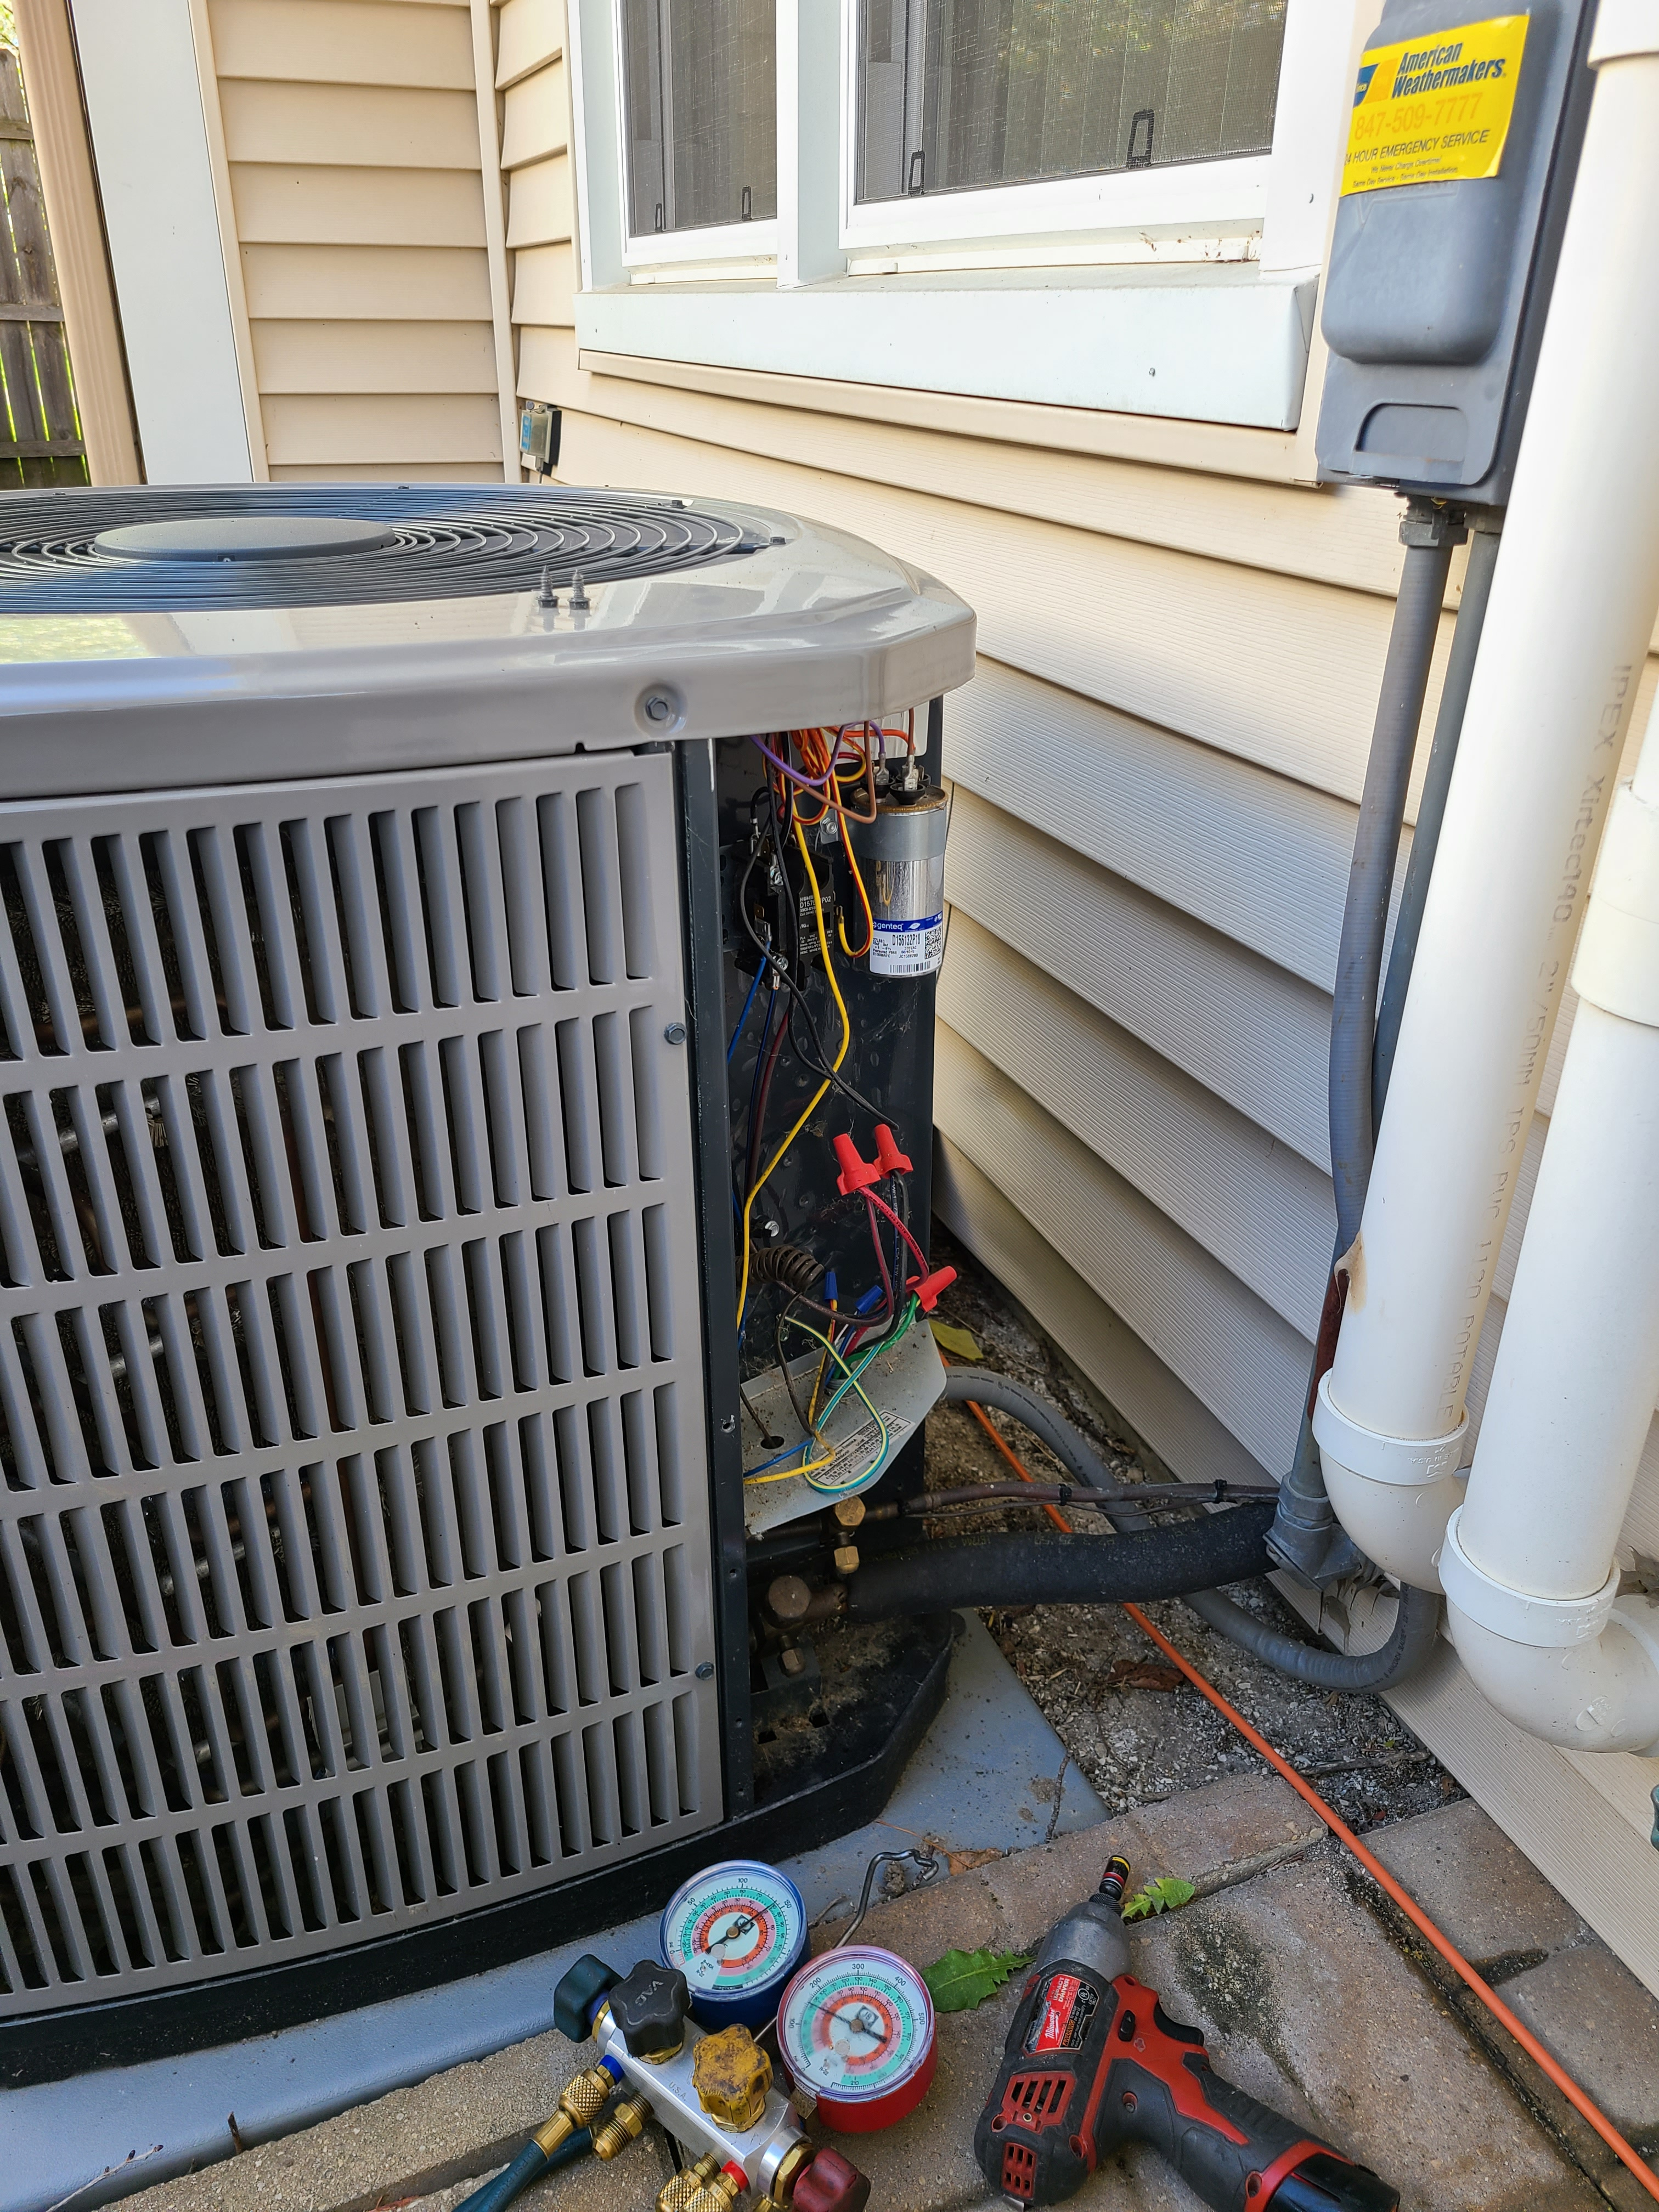 American Standard air conditioning system cleaned and checked, ready for spring.